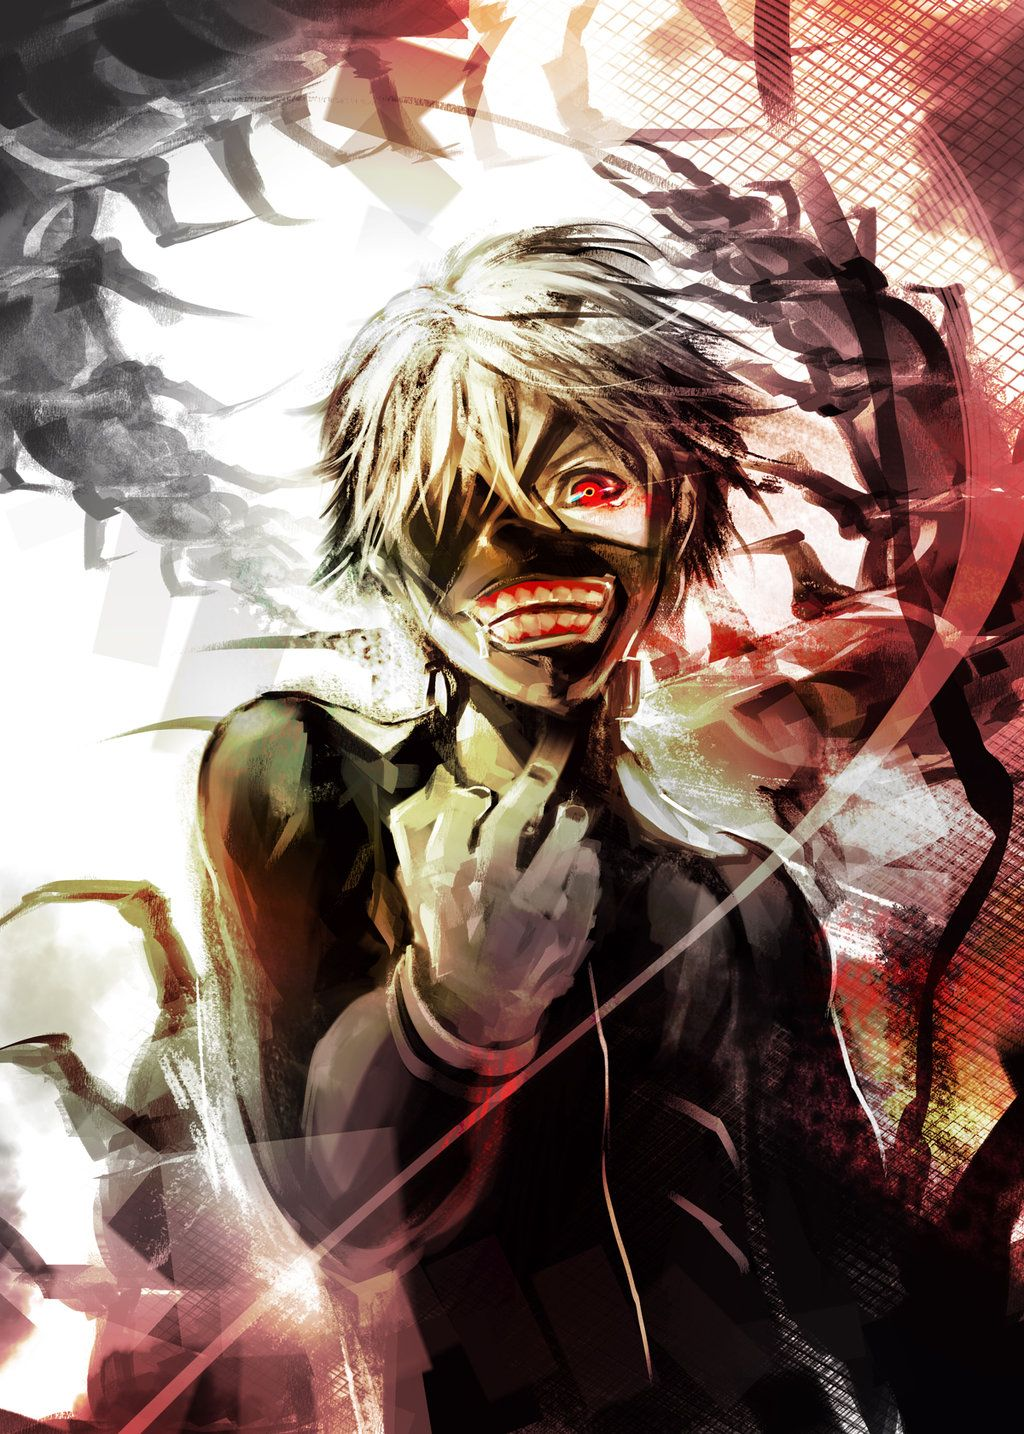 Pin By Aika On Tokyo Ghoul Pinterest Tokyo Ghoul Tokyo Ghoul